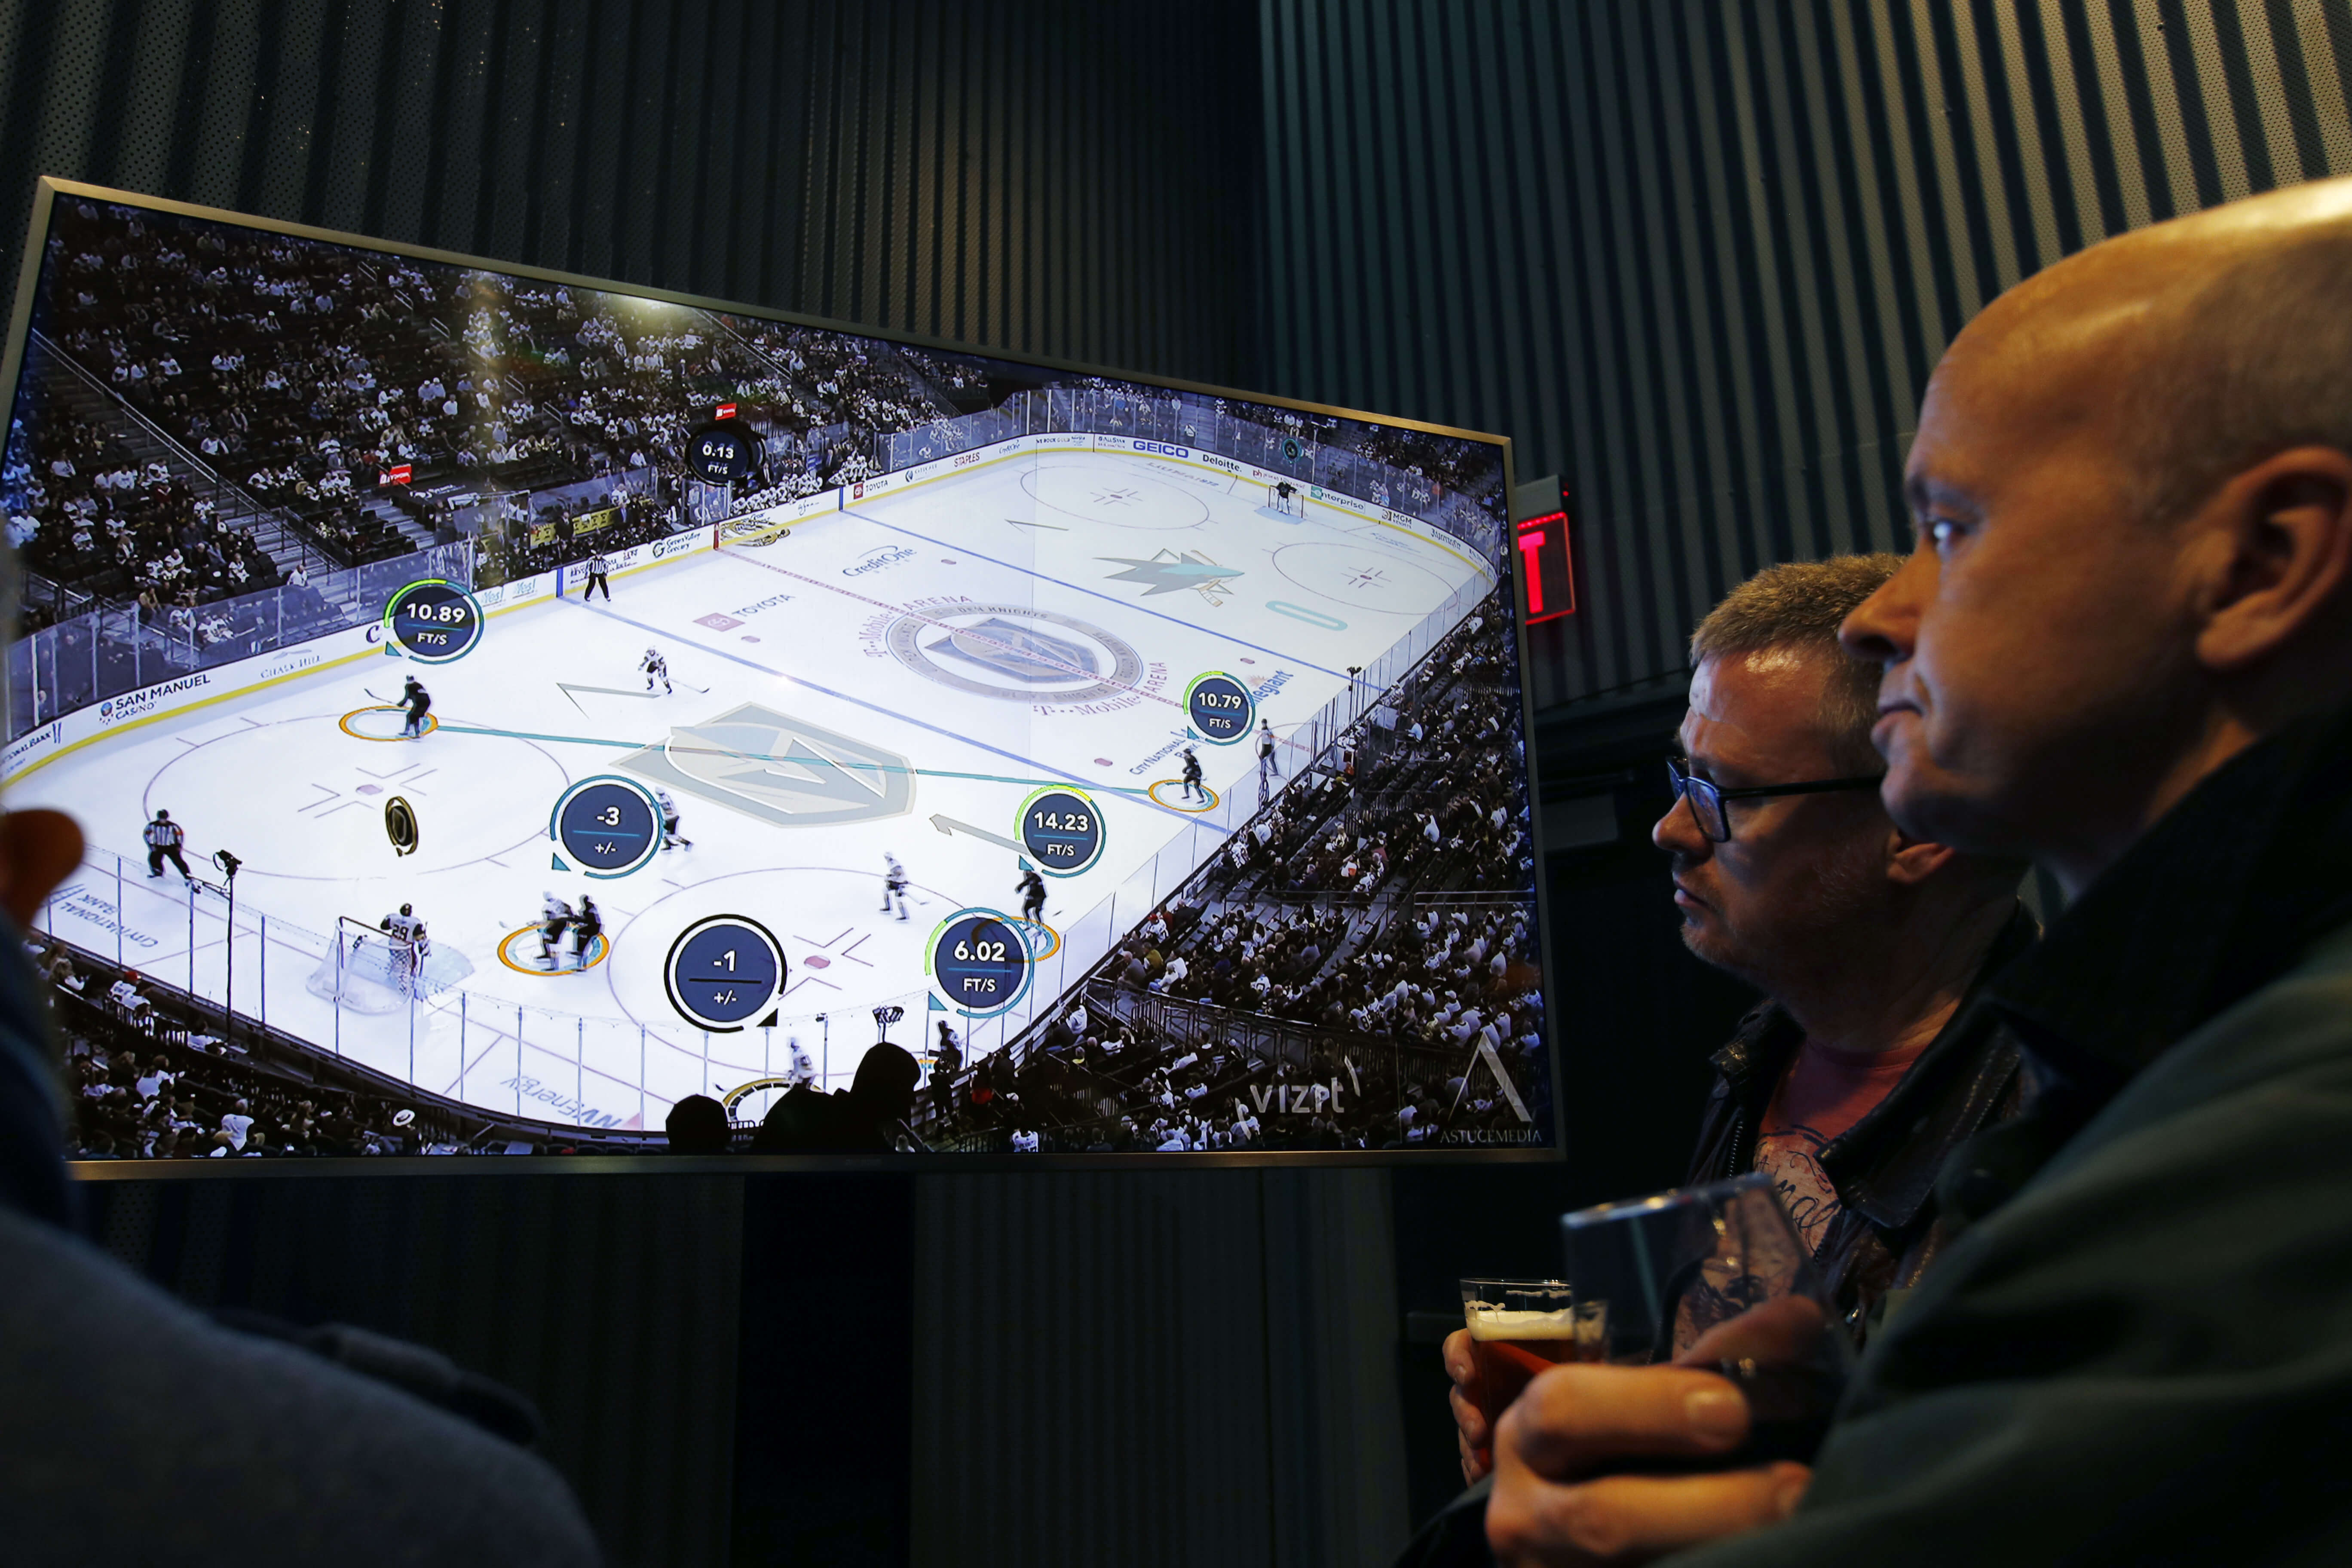 People watch real-time puck and player tracking technology on display during an NHL game between the Vegas Golden Knights and the San Jose Sharks in Las Vegas on Thursday.